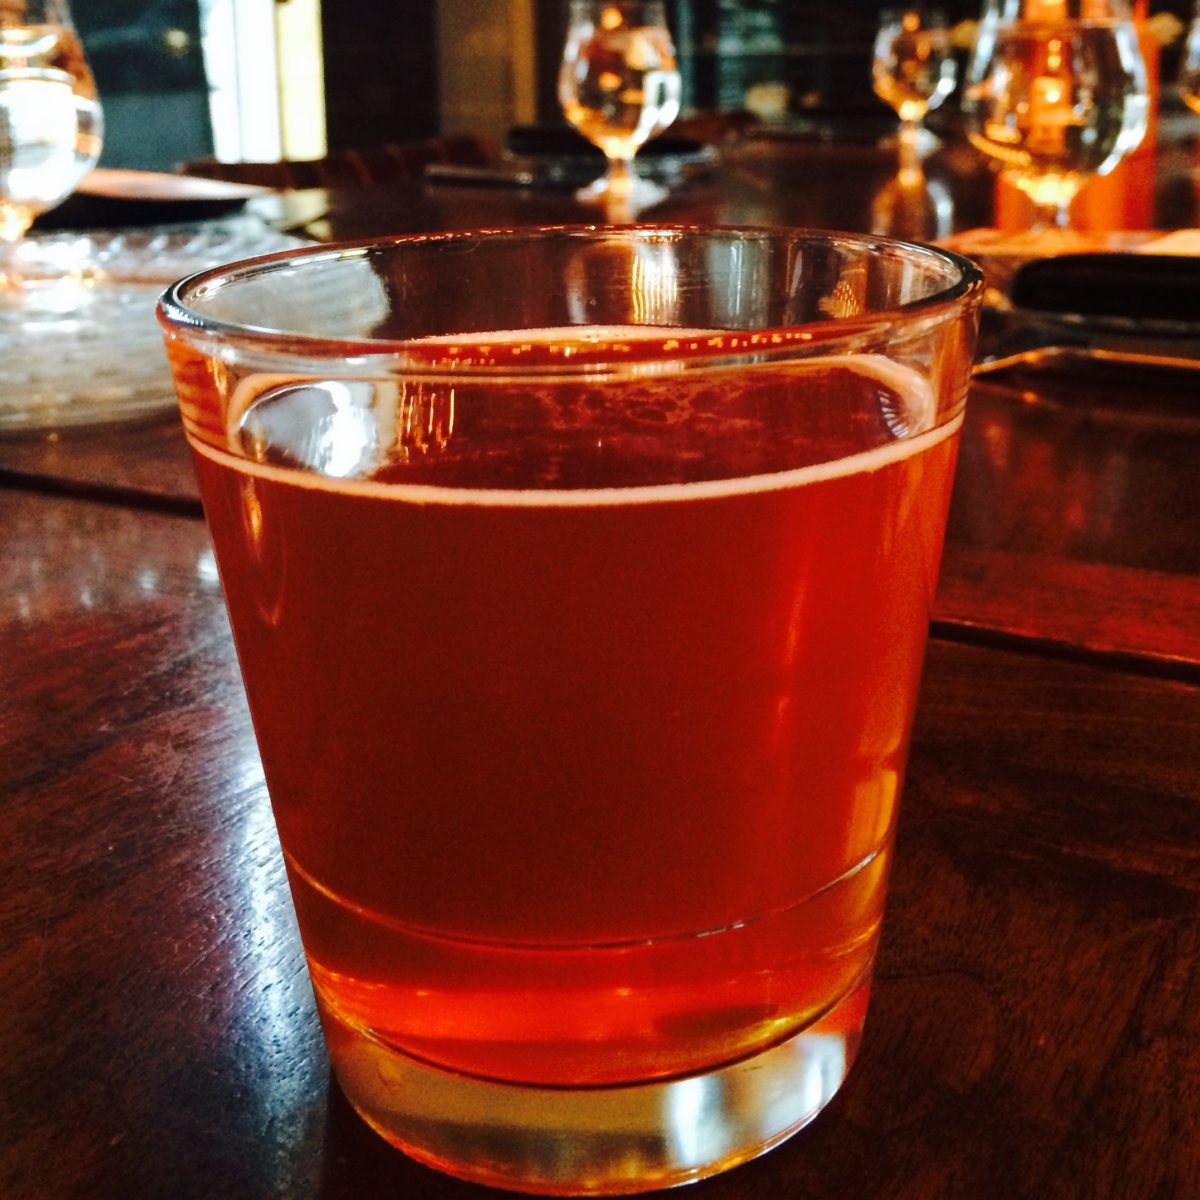 Deschutes River Ale GoldenAle from Deschutes Brewery Beer Dinner at Cook Hall Dallas